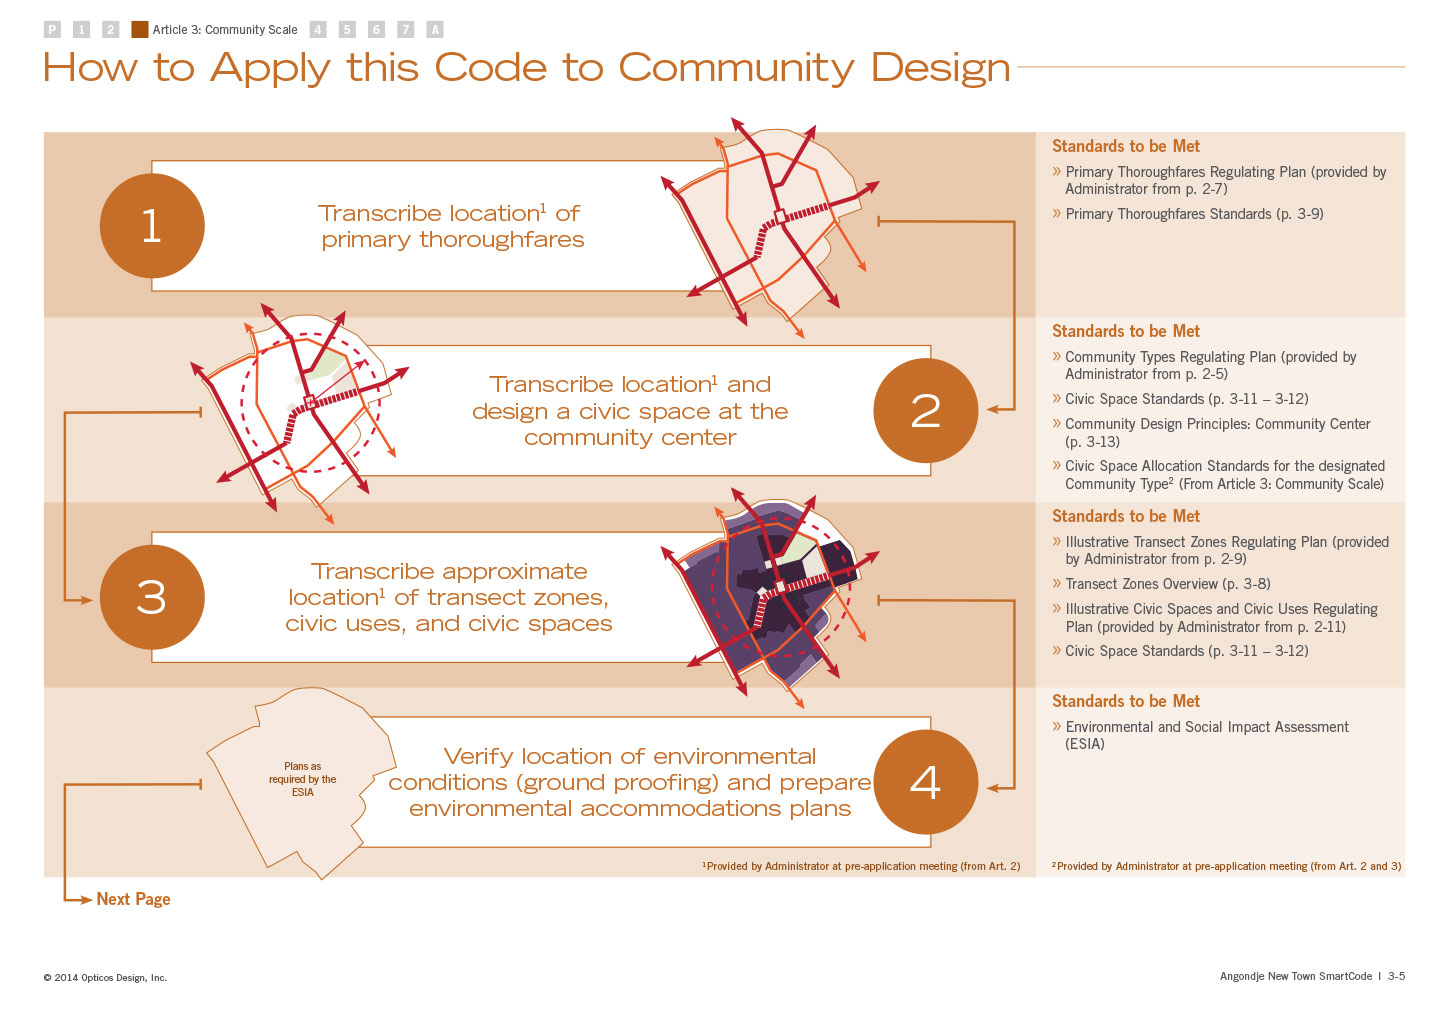 How to Apply the Code to Community Design, illustrating how to use the code for community design